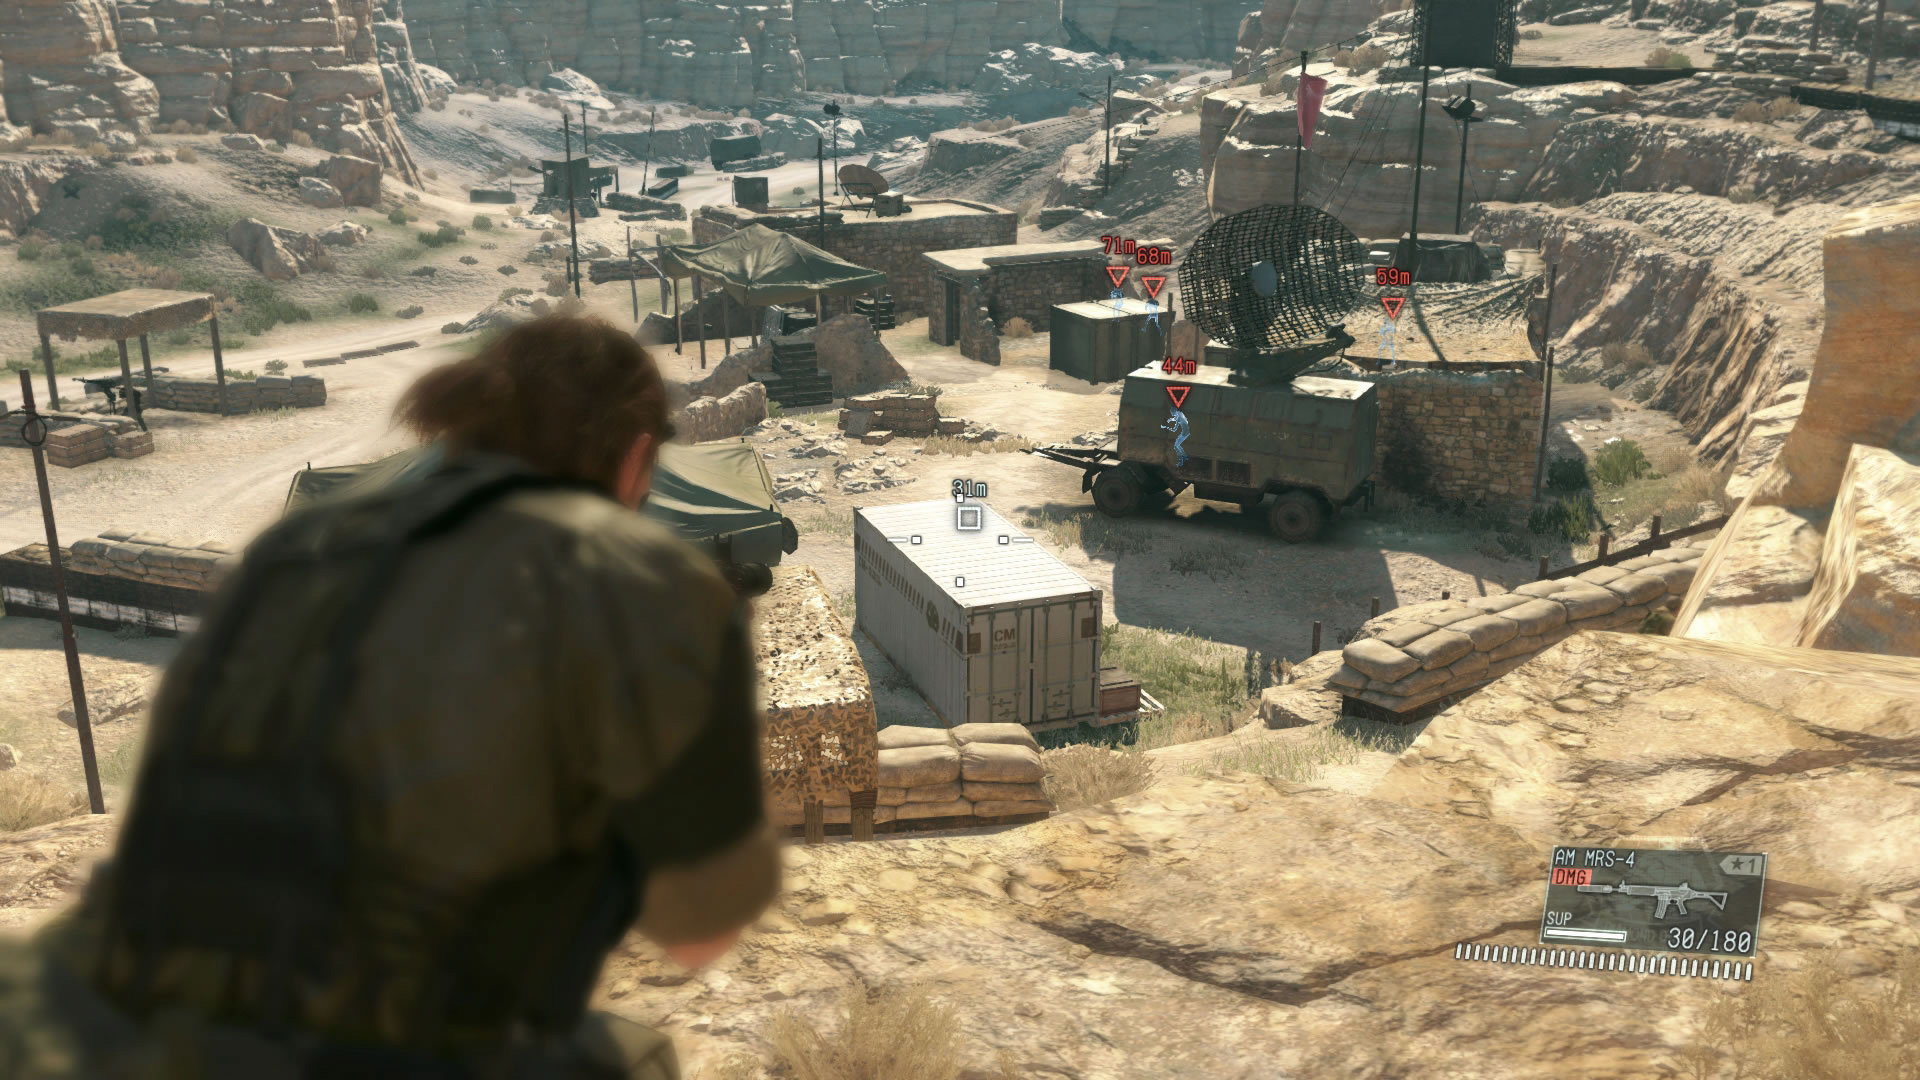 Metal-Gear-Solid-V-The-Phantom-Pain-Screenshot-8